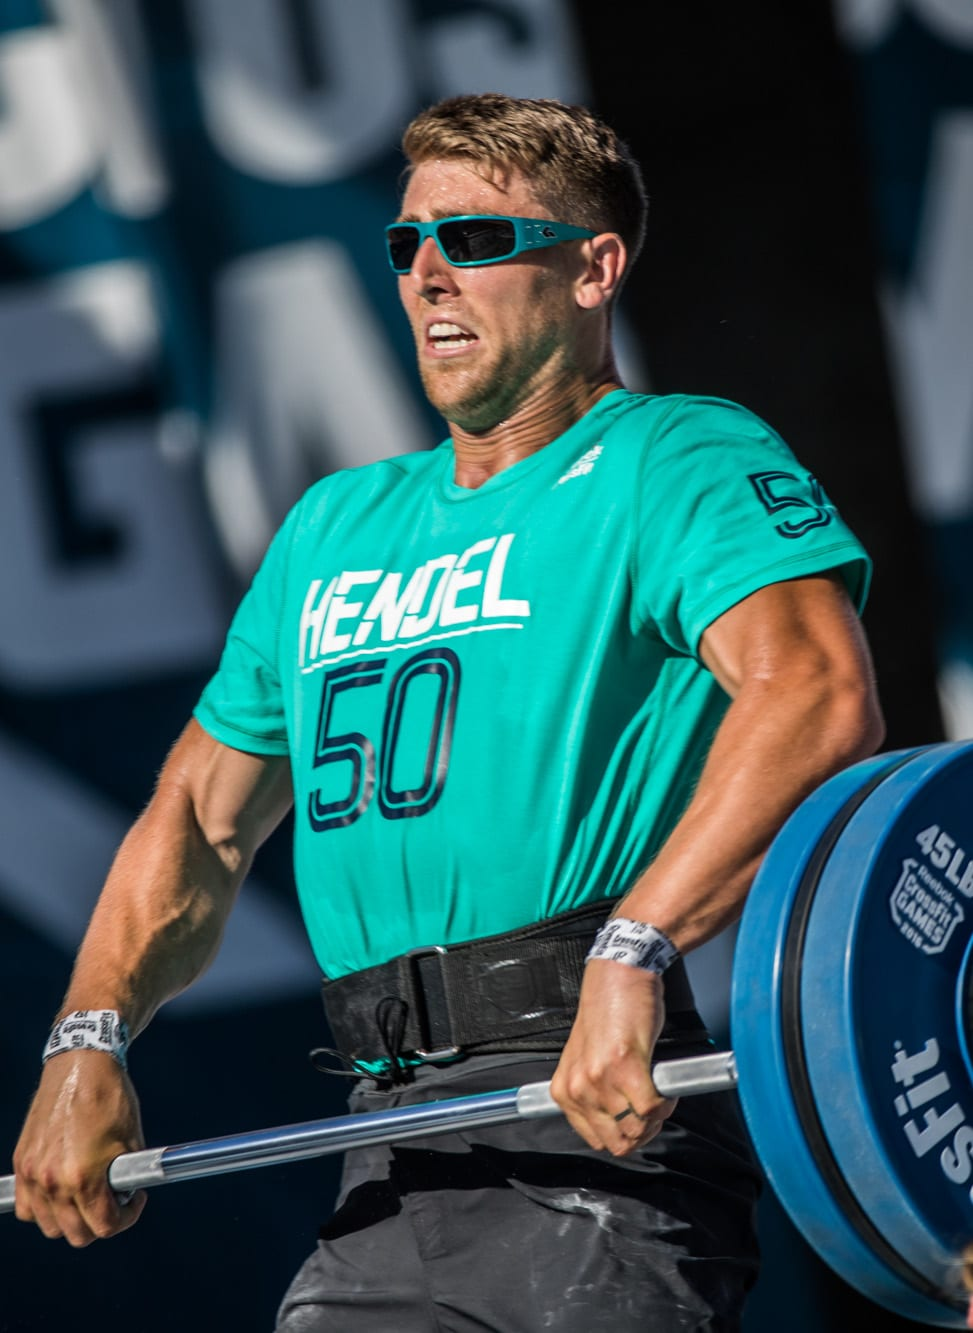 crossfit-games-overview-spencer-hendel